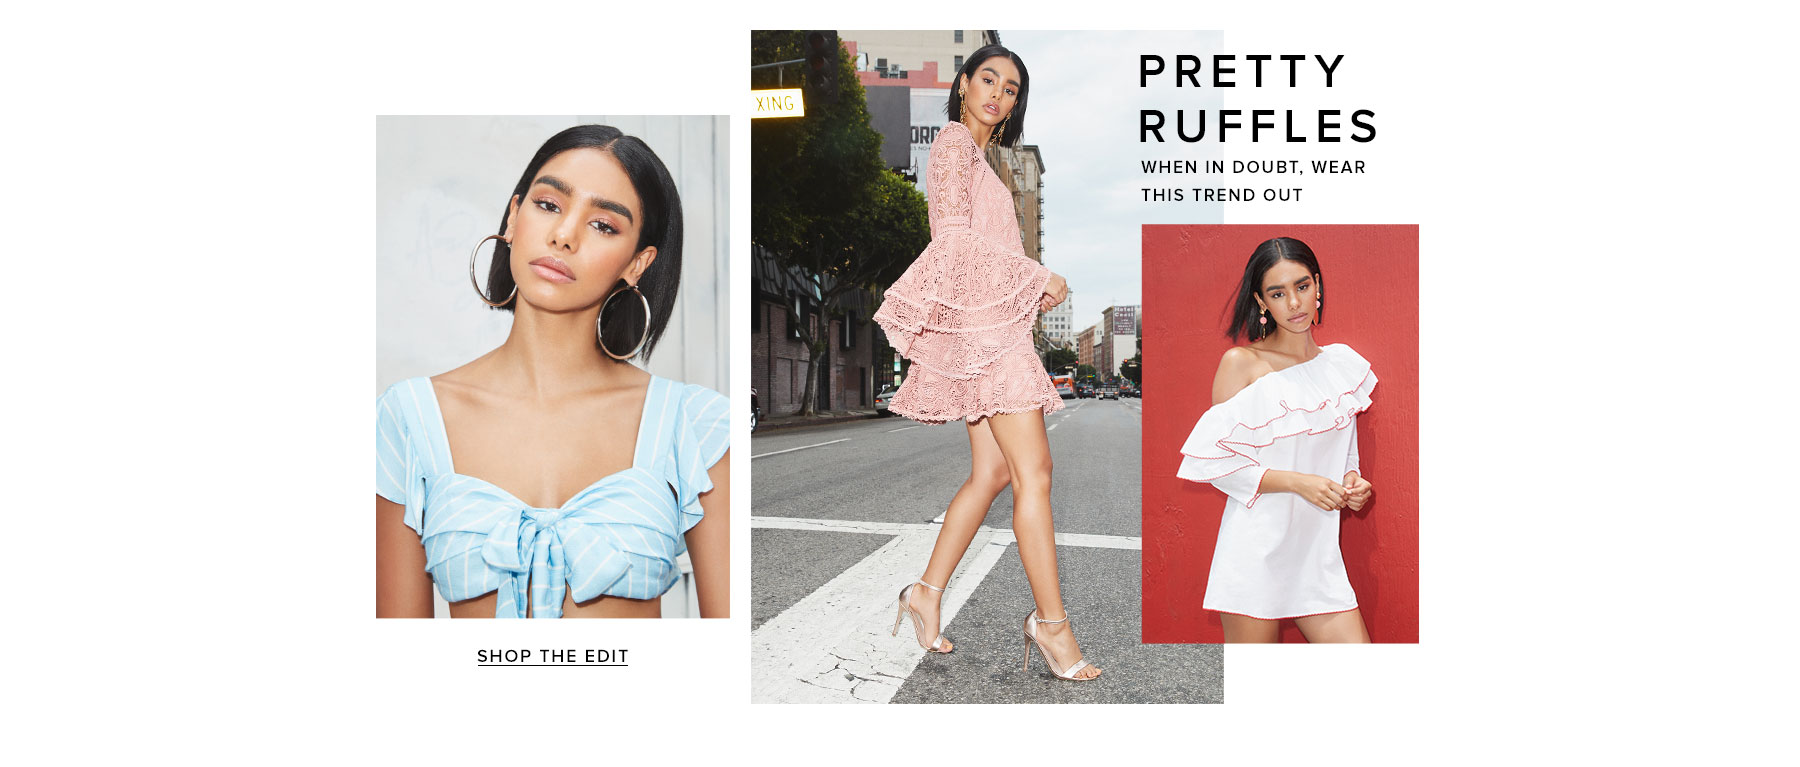 Pretty Ruffles. When in doubt, wear this trend out. Shop the edit.